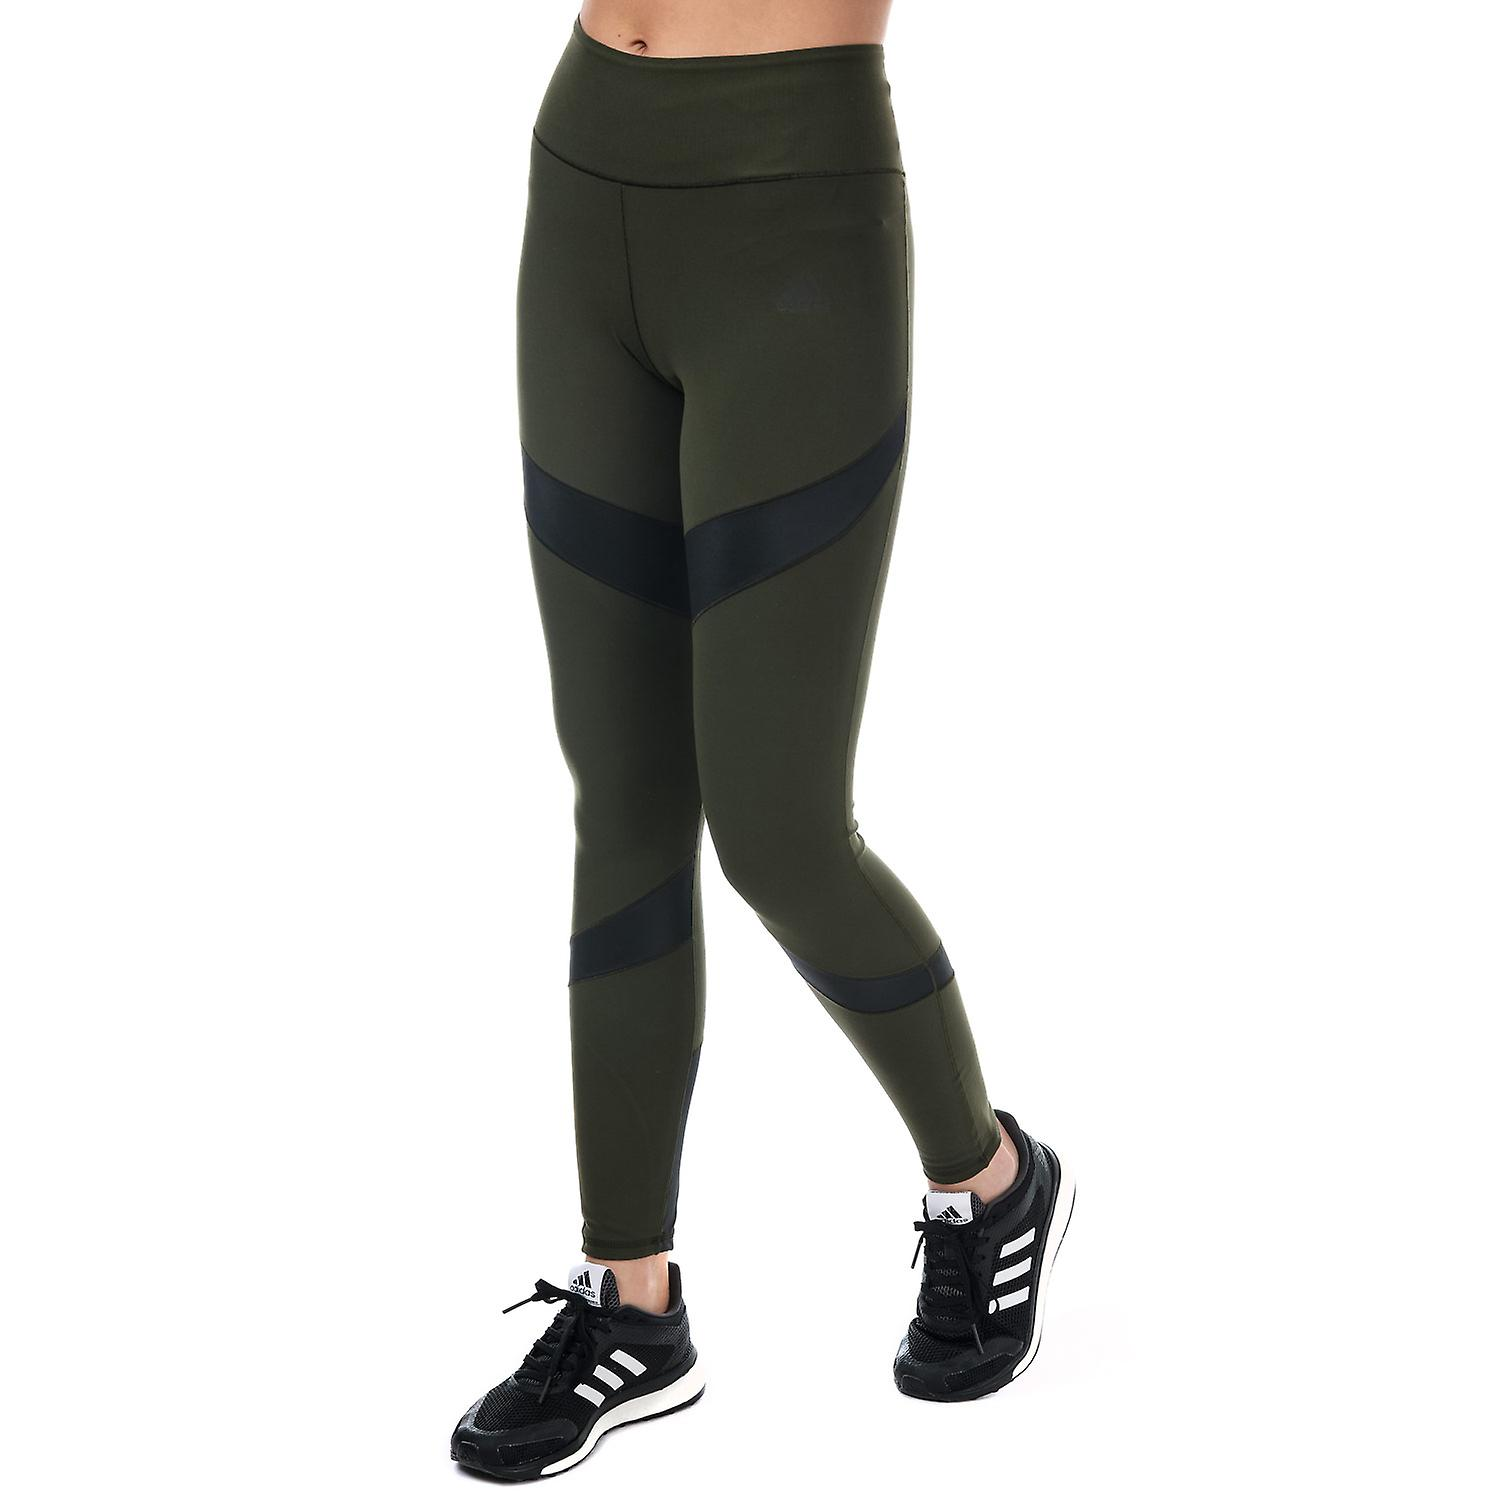 b161523fef4 Womens adidas Ultimate Warm Tights In Night Cargo | Fruugo